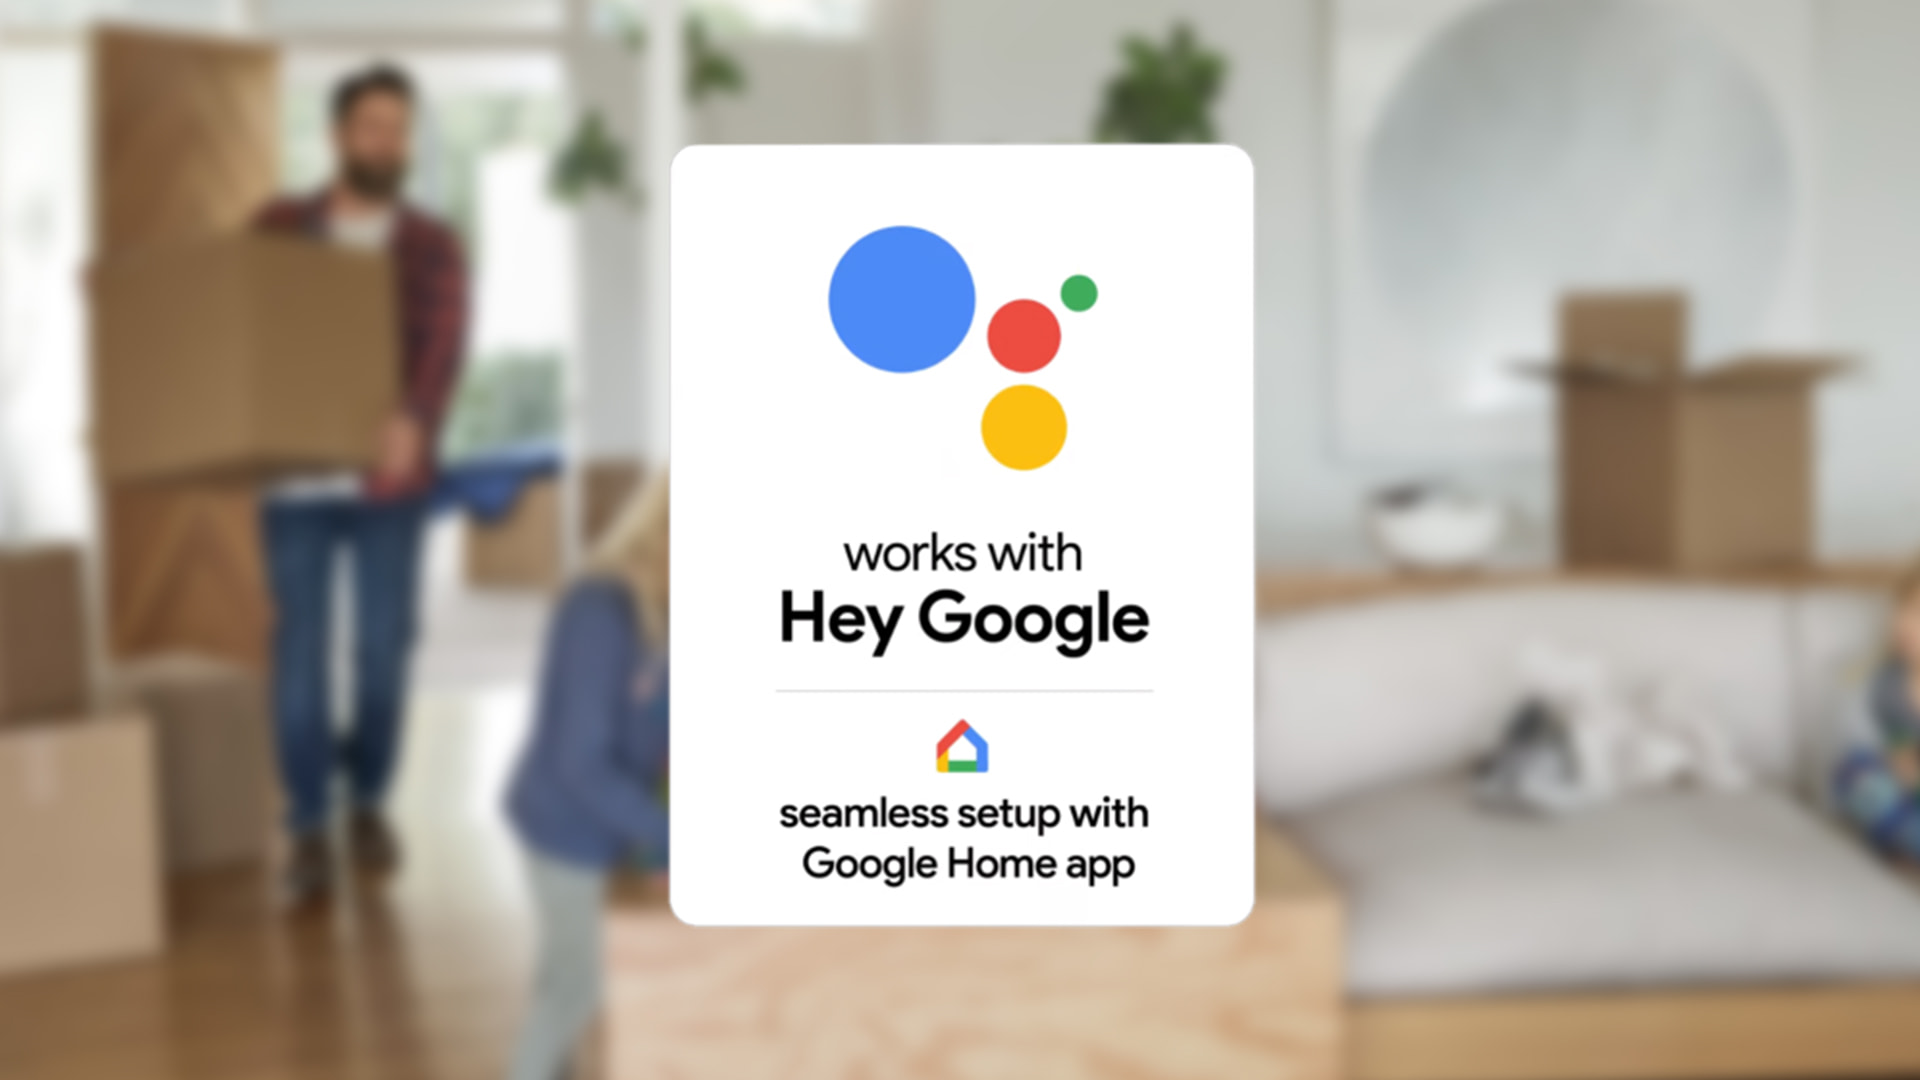 Google Assistant-enabled device boxes to receive a new badge that indicates an easier setup process